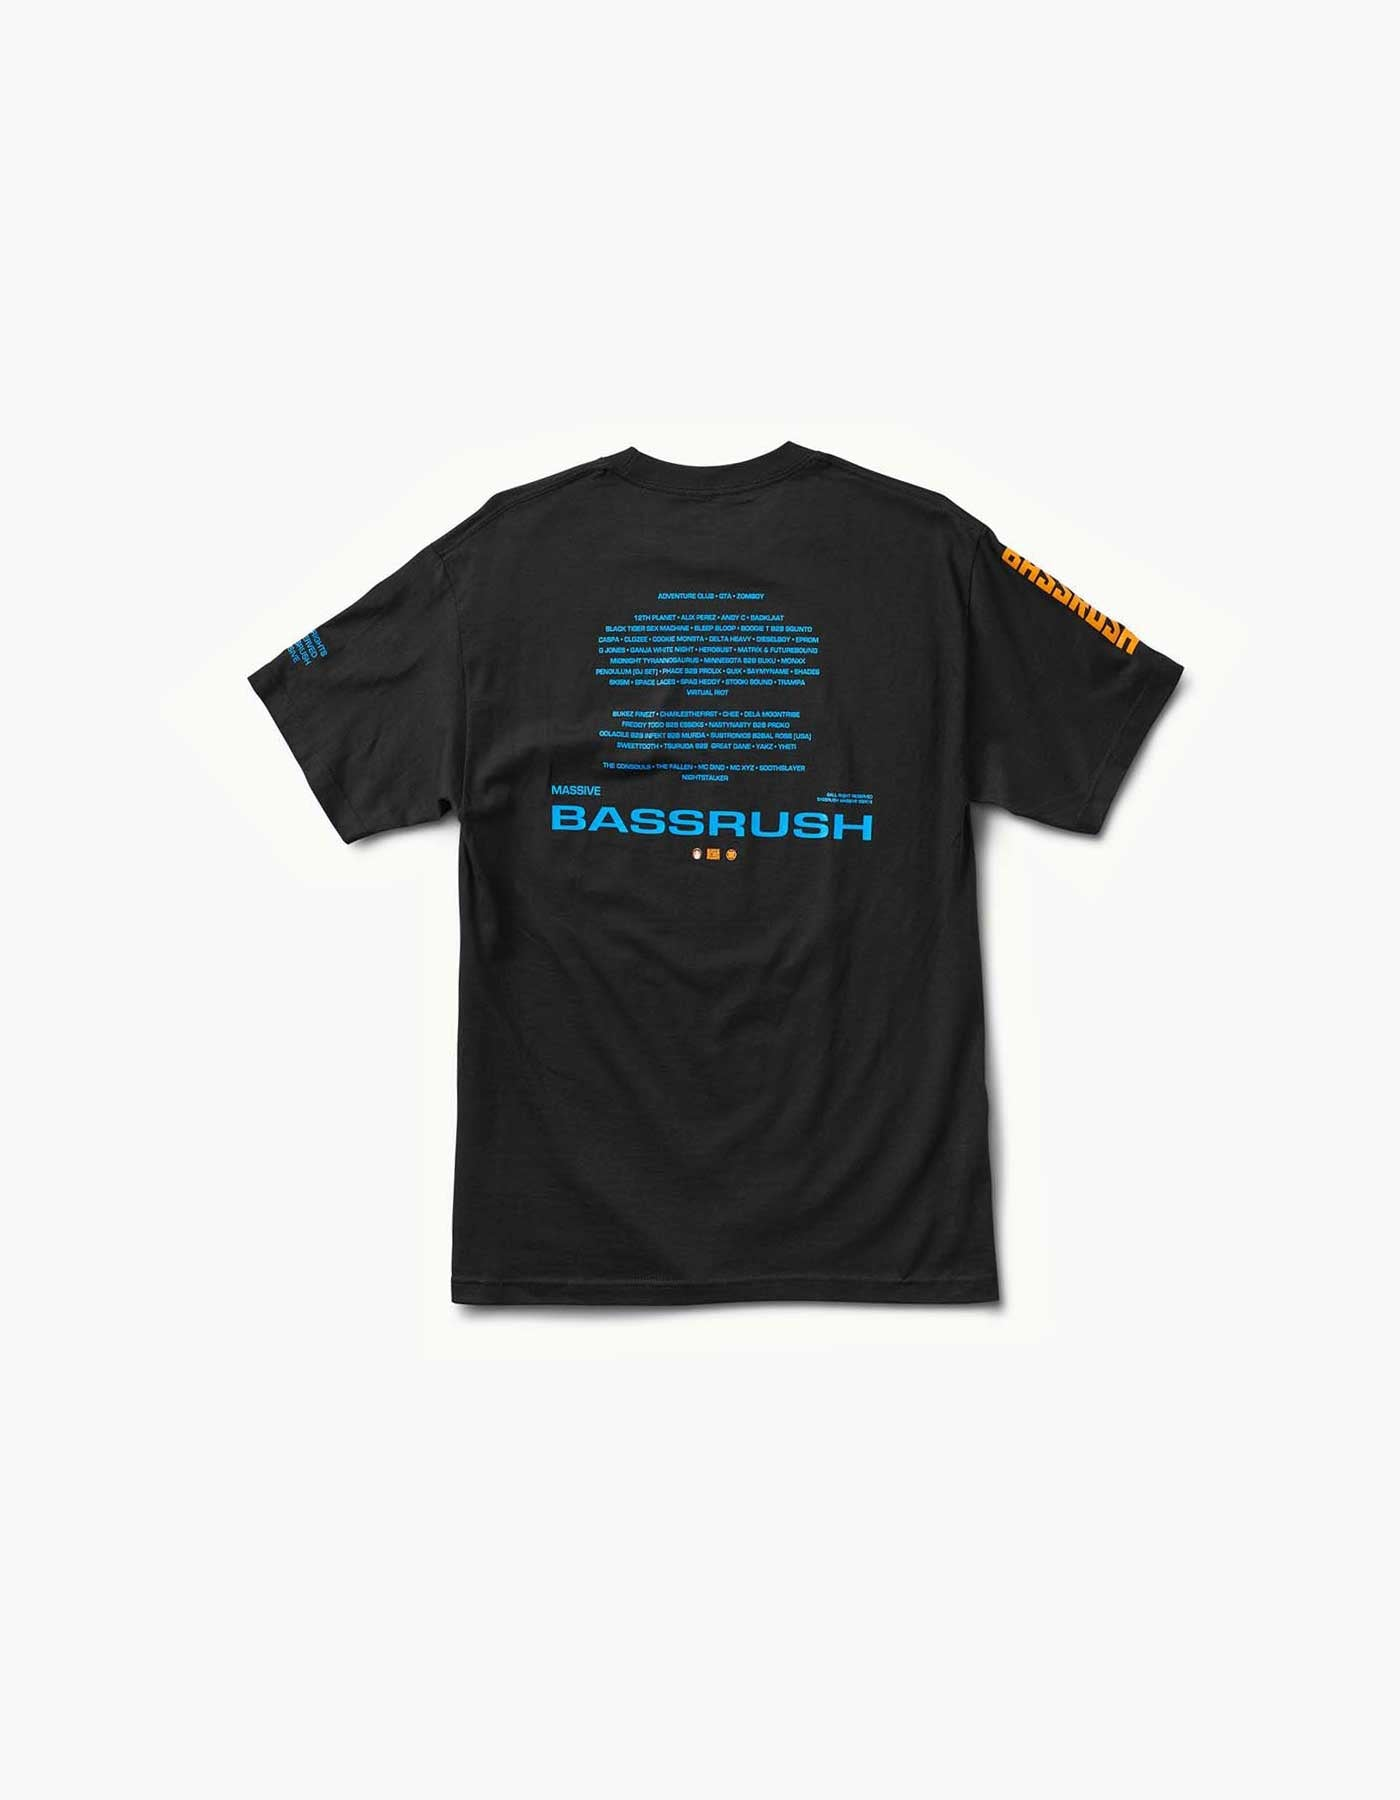 Bassrush - Massive 2018 Line Up Tee